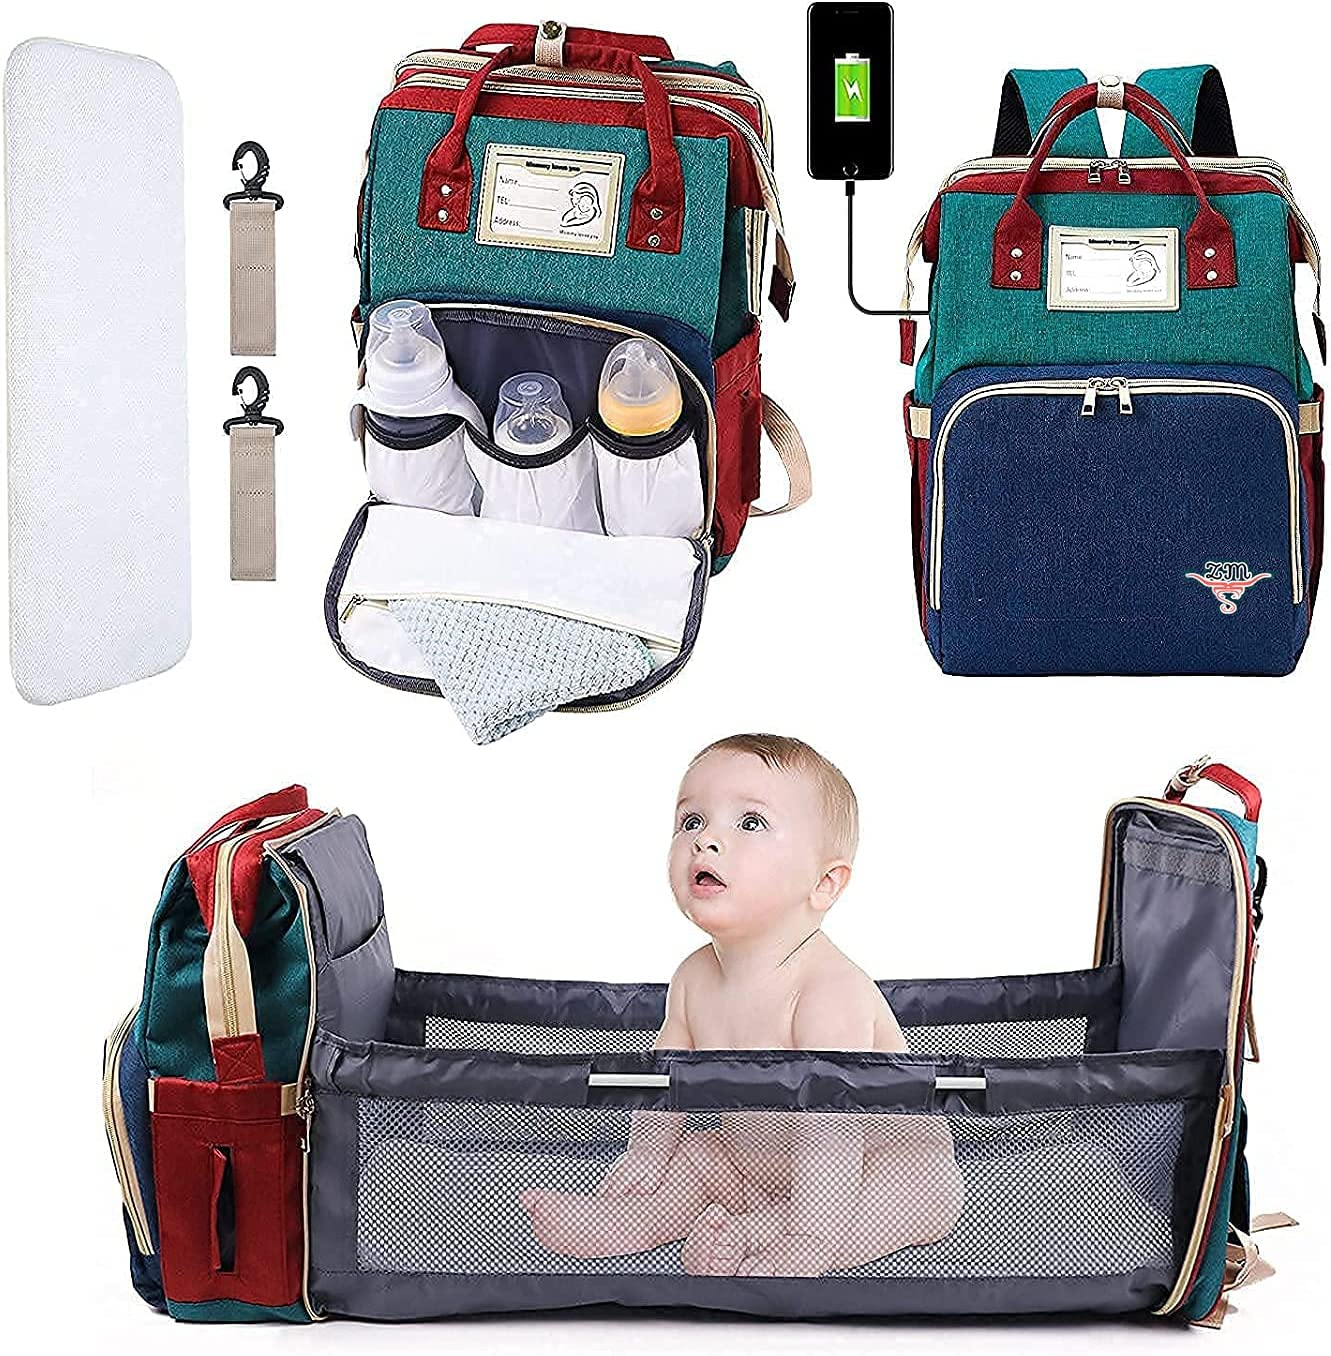 ZM Portable Baby Diaper Bag with Changing Station Waterproof USB Charging Port Large Capacity Cradle Travel Bassinet Foldable Backpack Organizer Bed Crib Multifunction Diaper Bag Stroller Straps (Green)